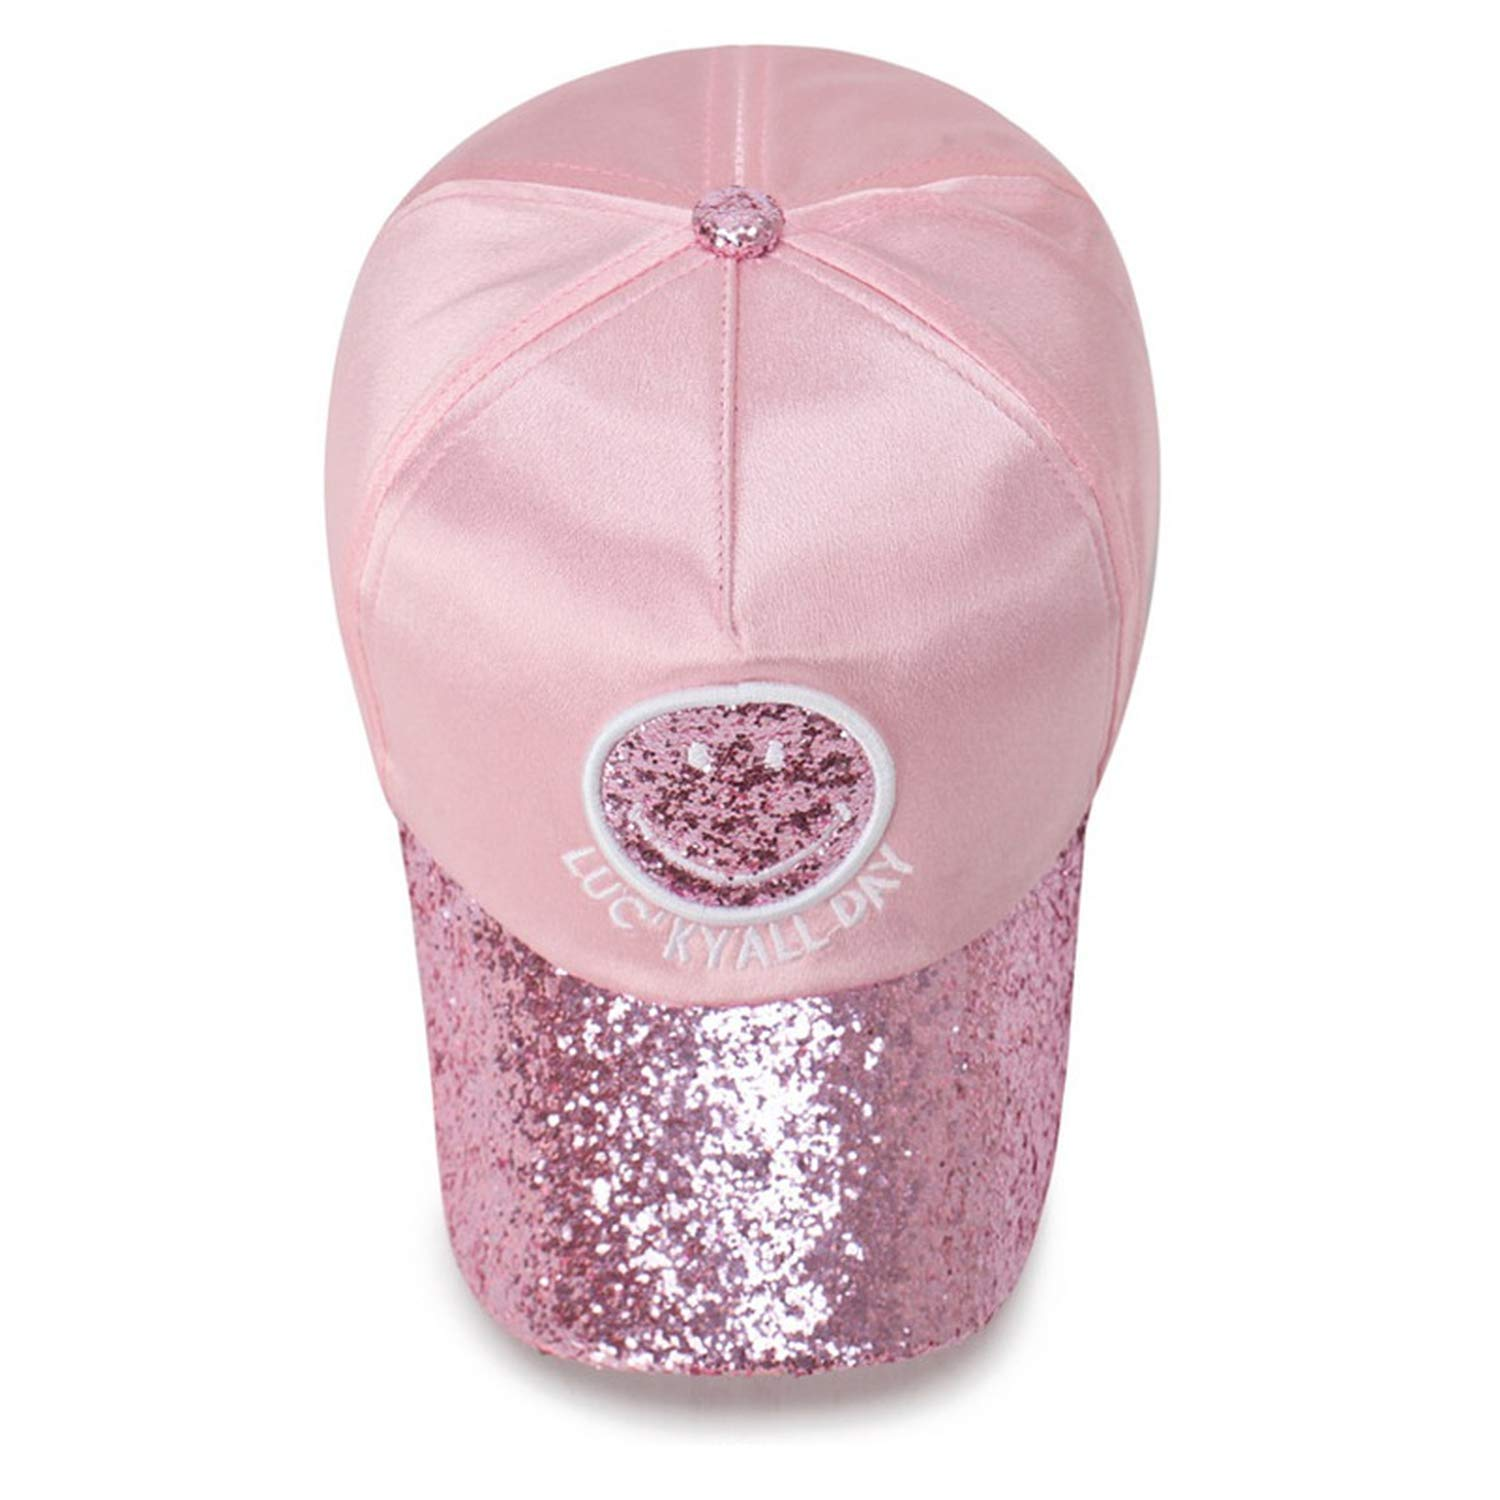 TokLask Embroidered Letter Shiny Sequin Baseball Cap for Glitter Travel Sunshade Hiphop Hat Cartoon Smile face Cap